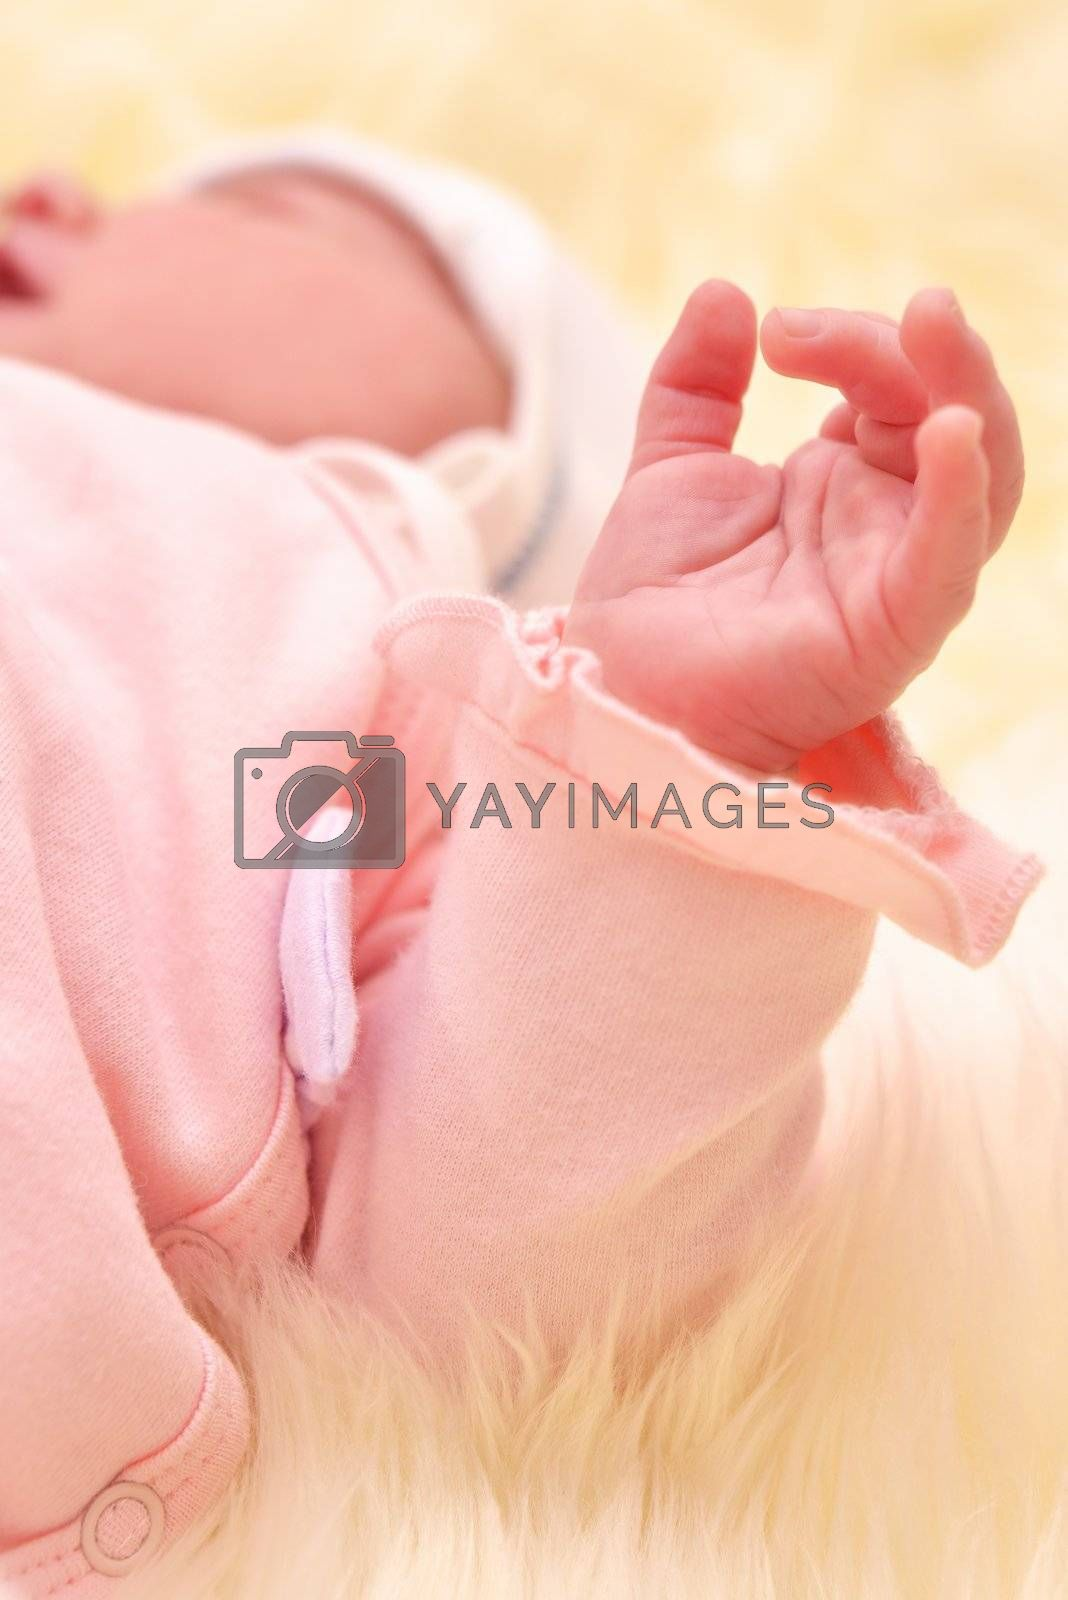 Royalty free image of Sleeping baby arm by grauvision